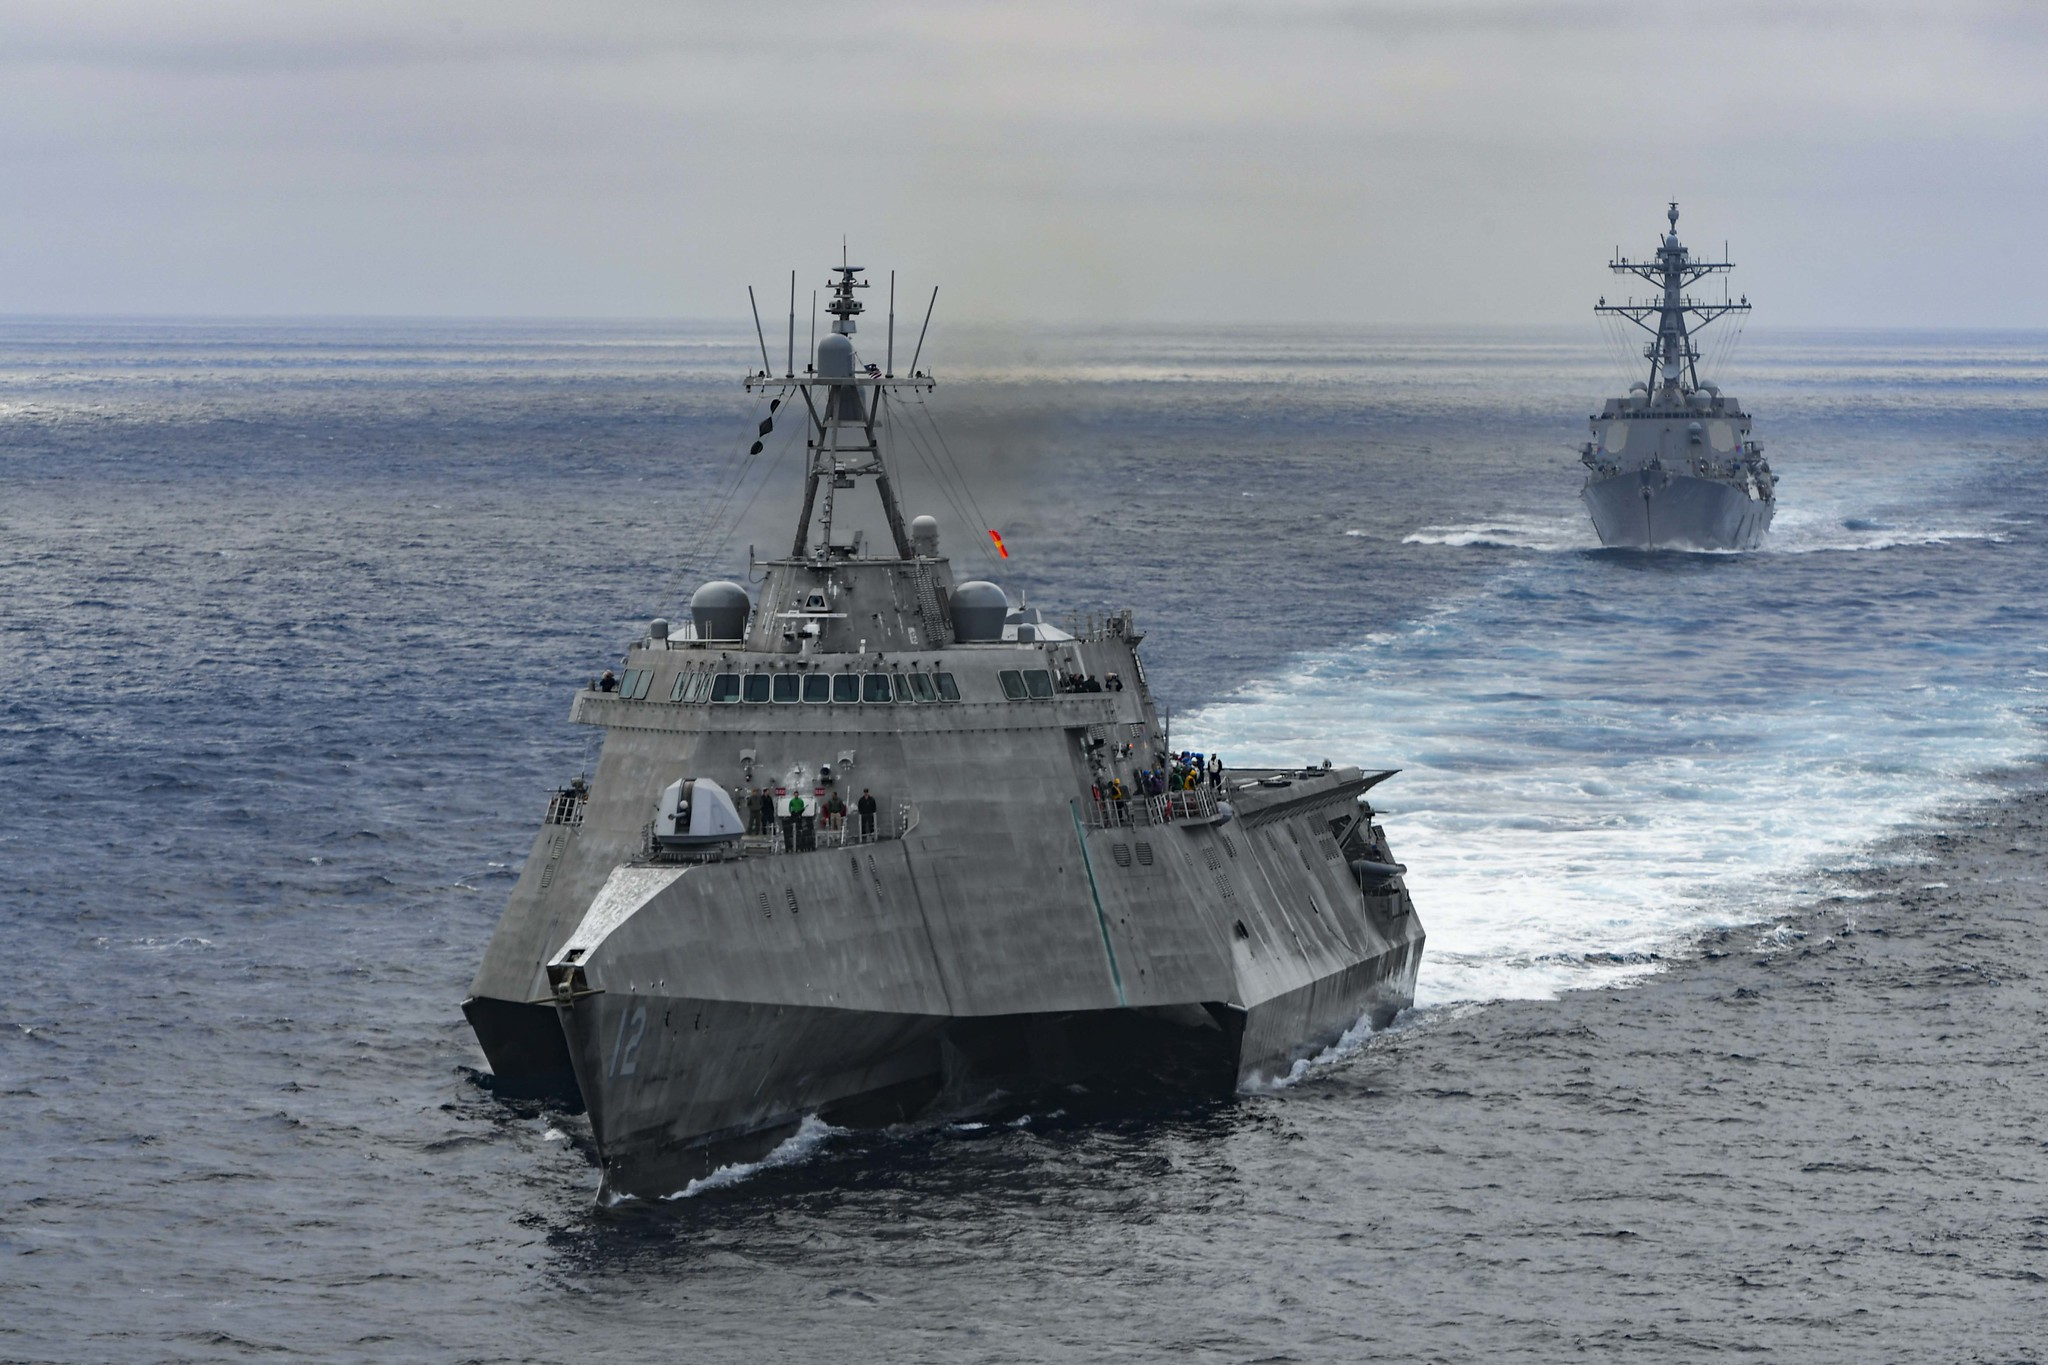 The U.S. Navy's Littoral Combat Ship: A Beautiful Disaster?